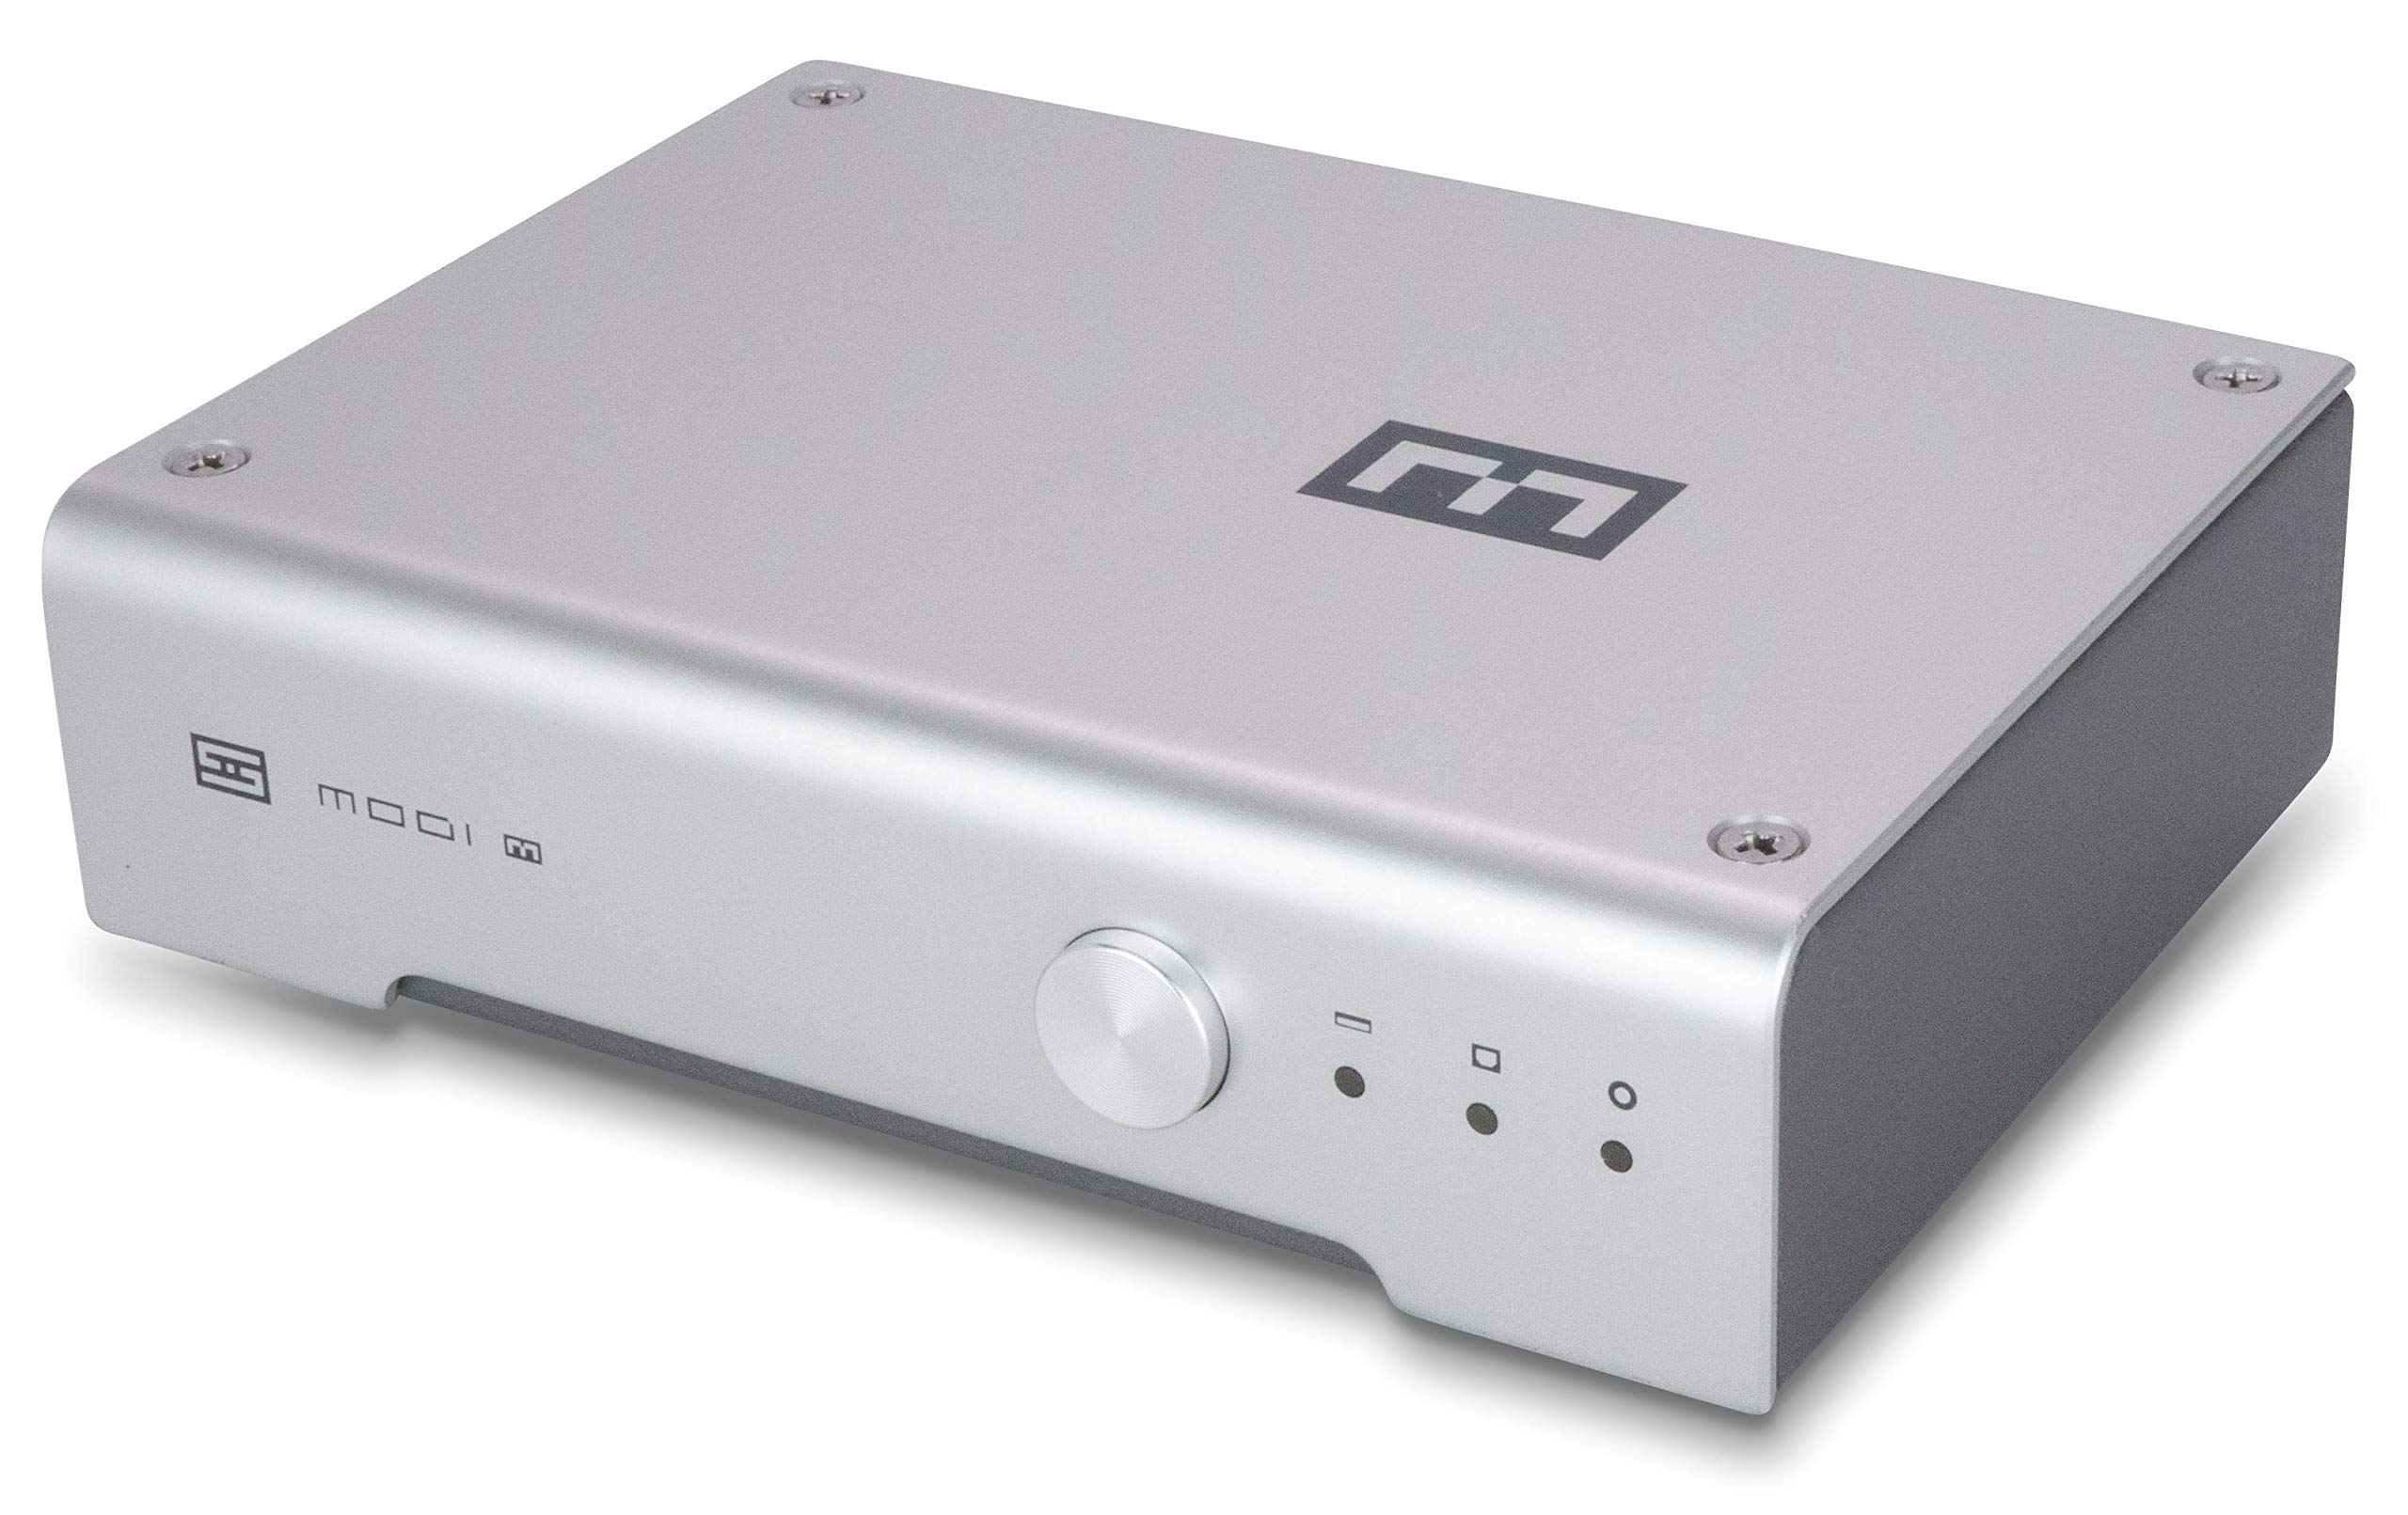 Schiit Modi Multibit DAC - D/A Converter (Certified Renewed)